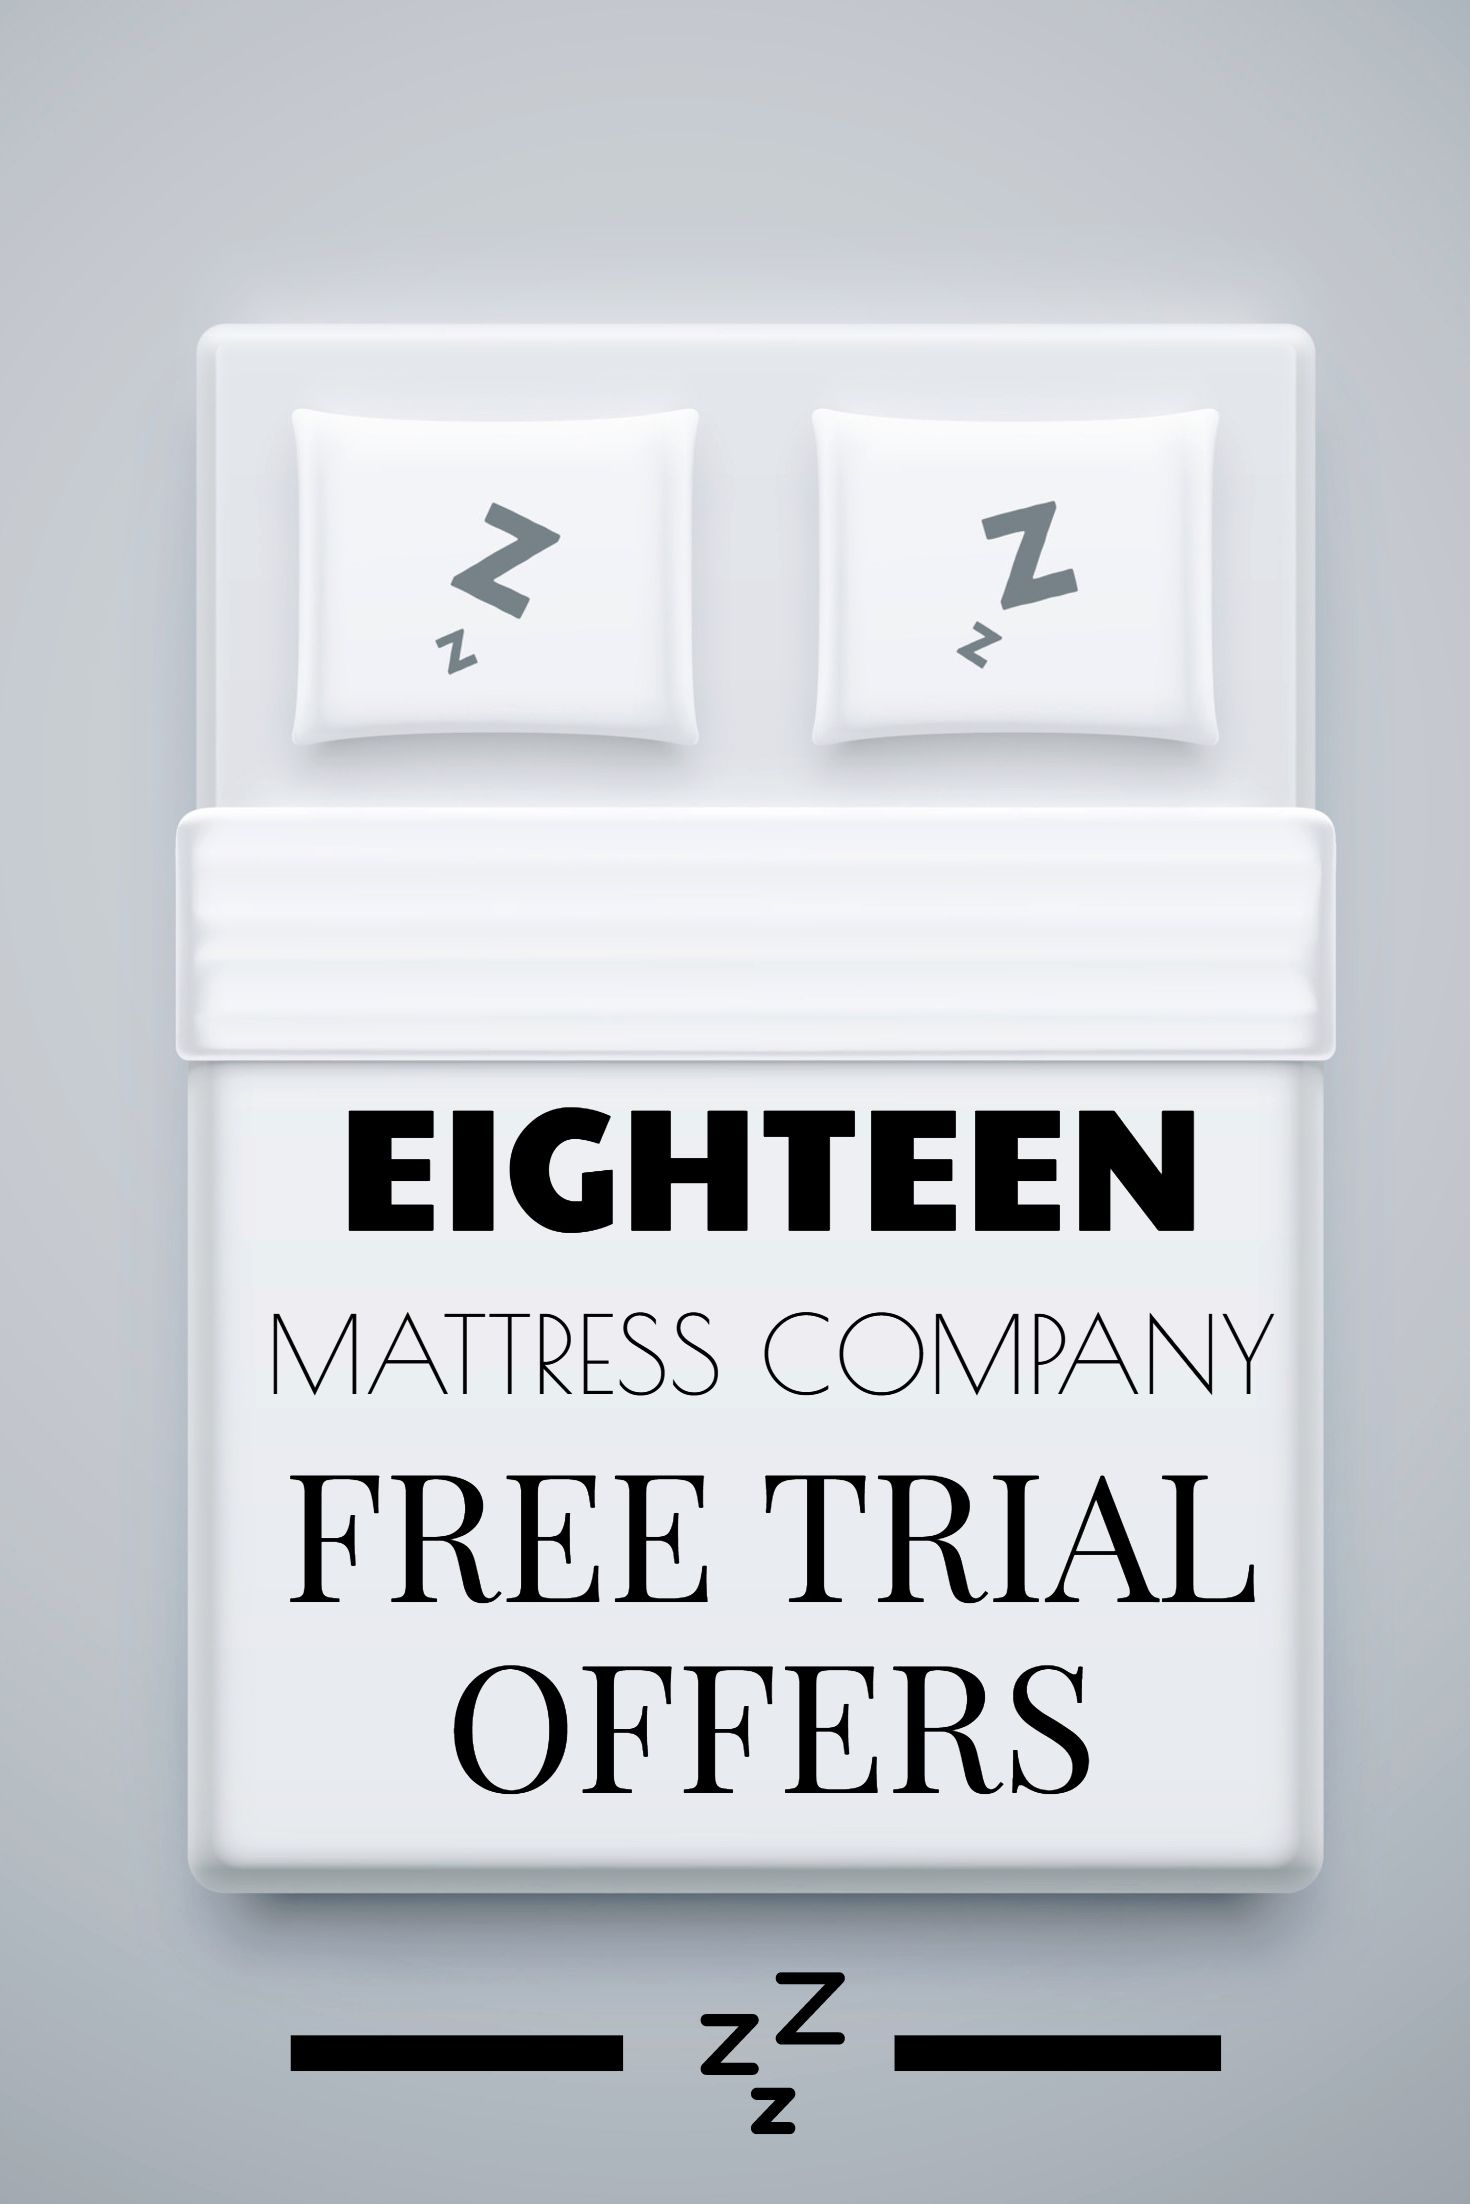 18 Mattress Company Free Trial Offers